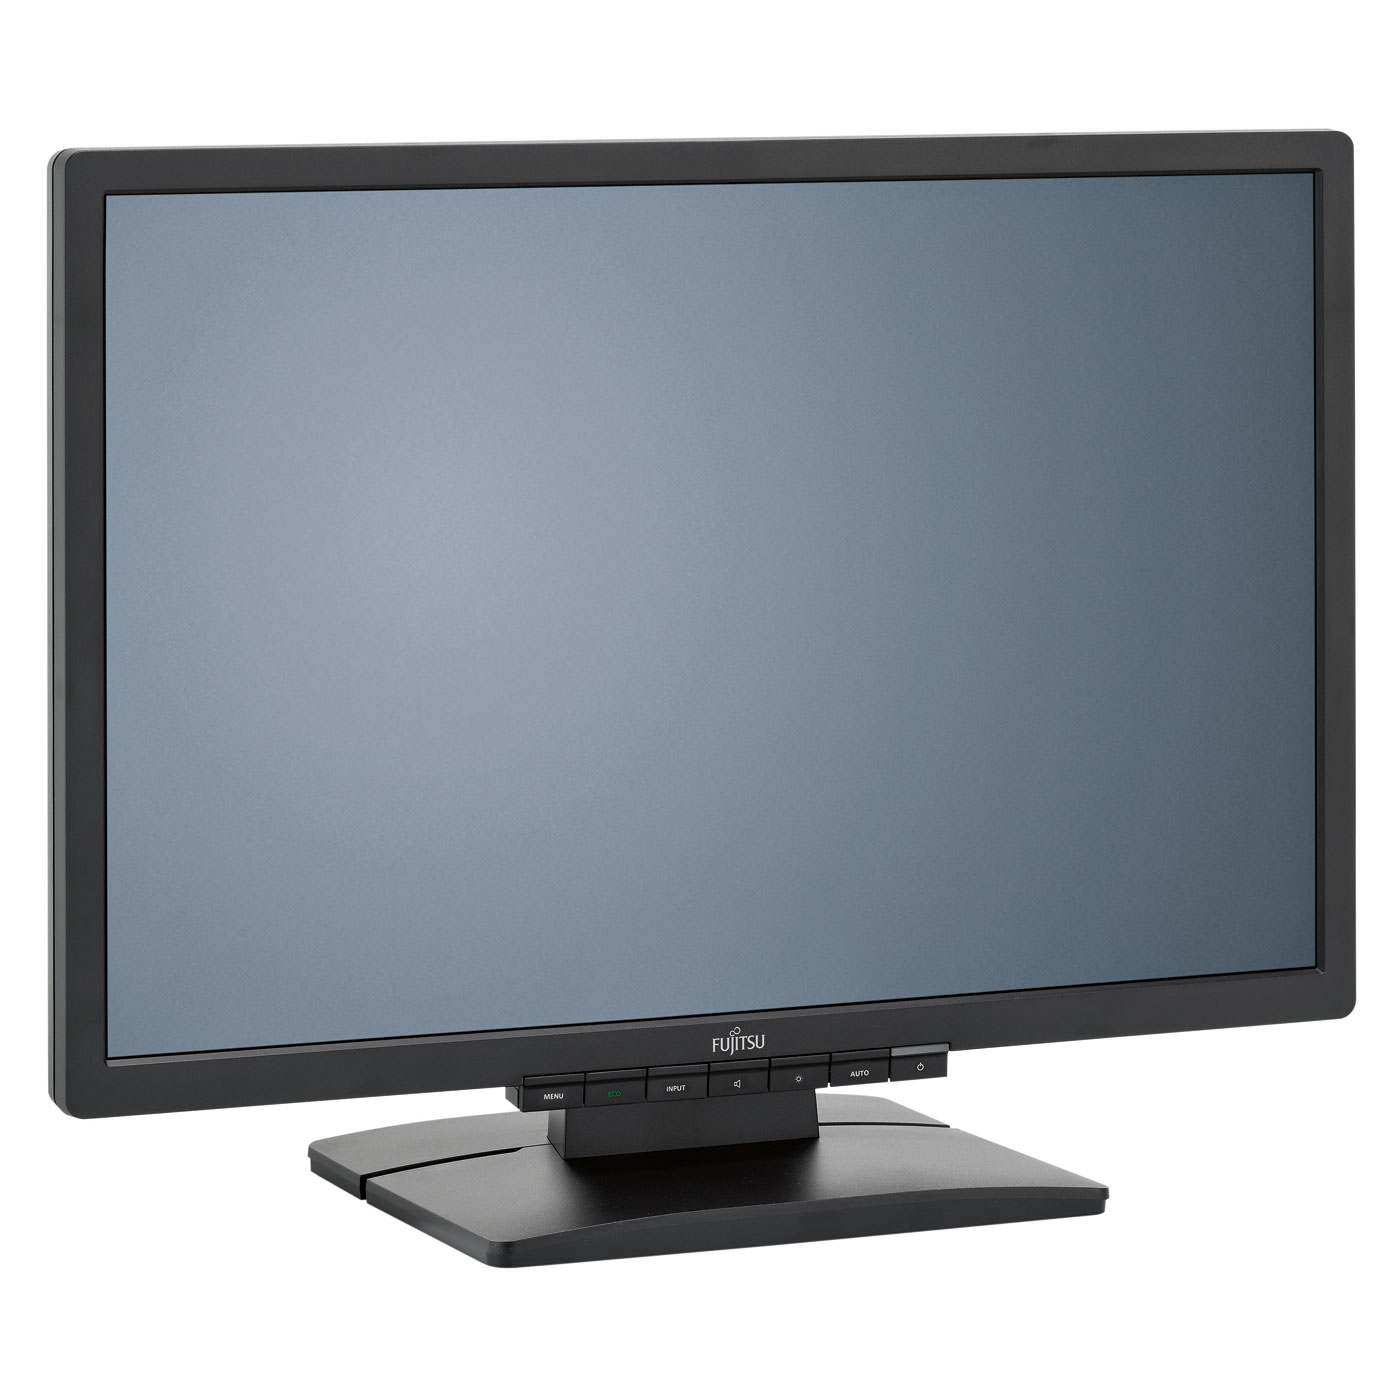 Fujitsu 22 led e22w 6 ecran pc fujitsu sur for Ecran dalle ips pour la photo